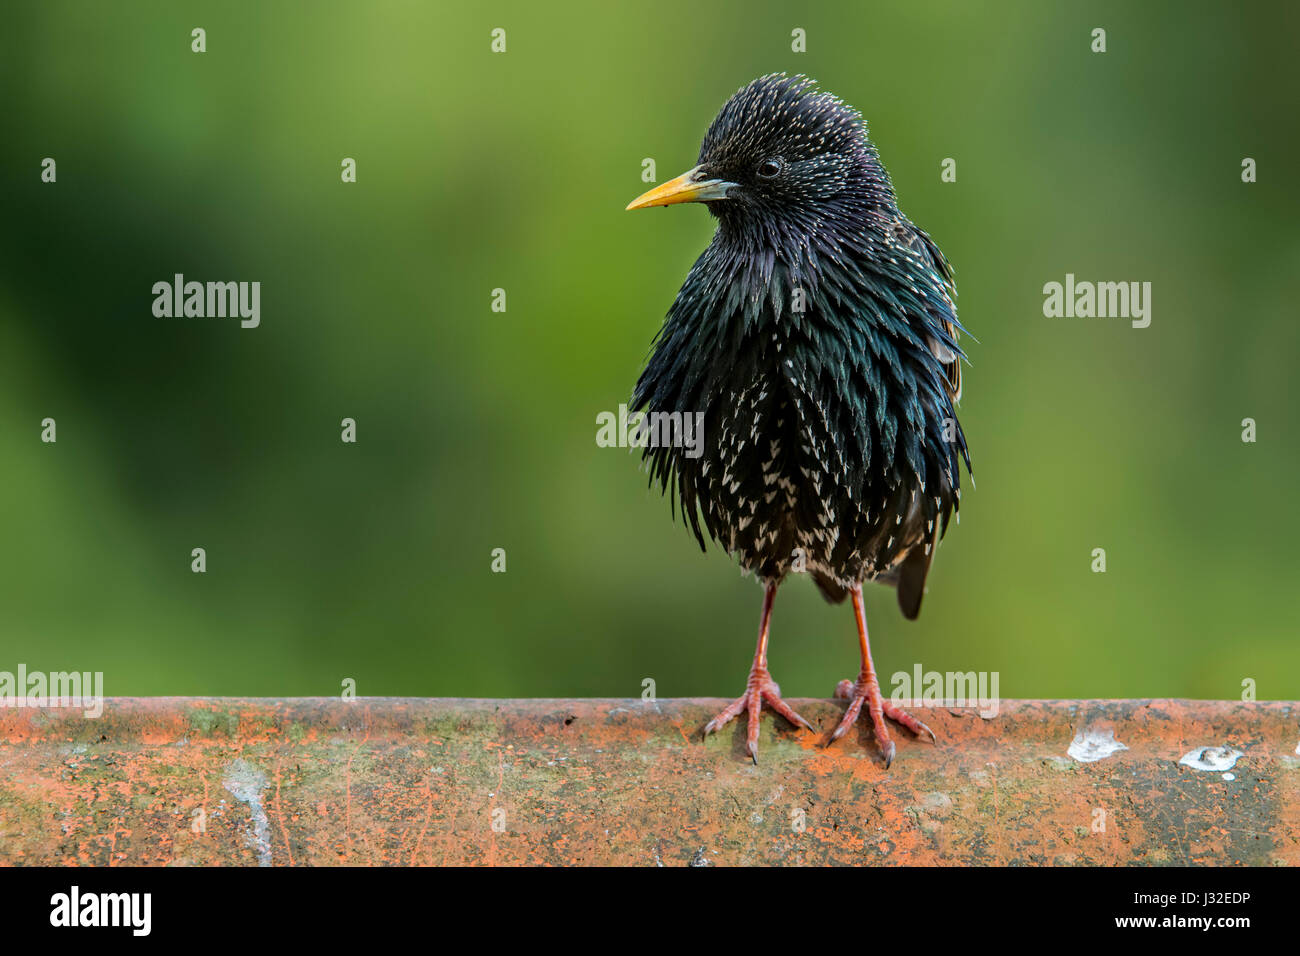 Common starling / European starling (Sturnus vulgaris) male perched on roof tile of house - Stock Image